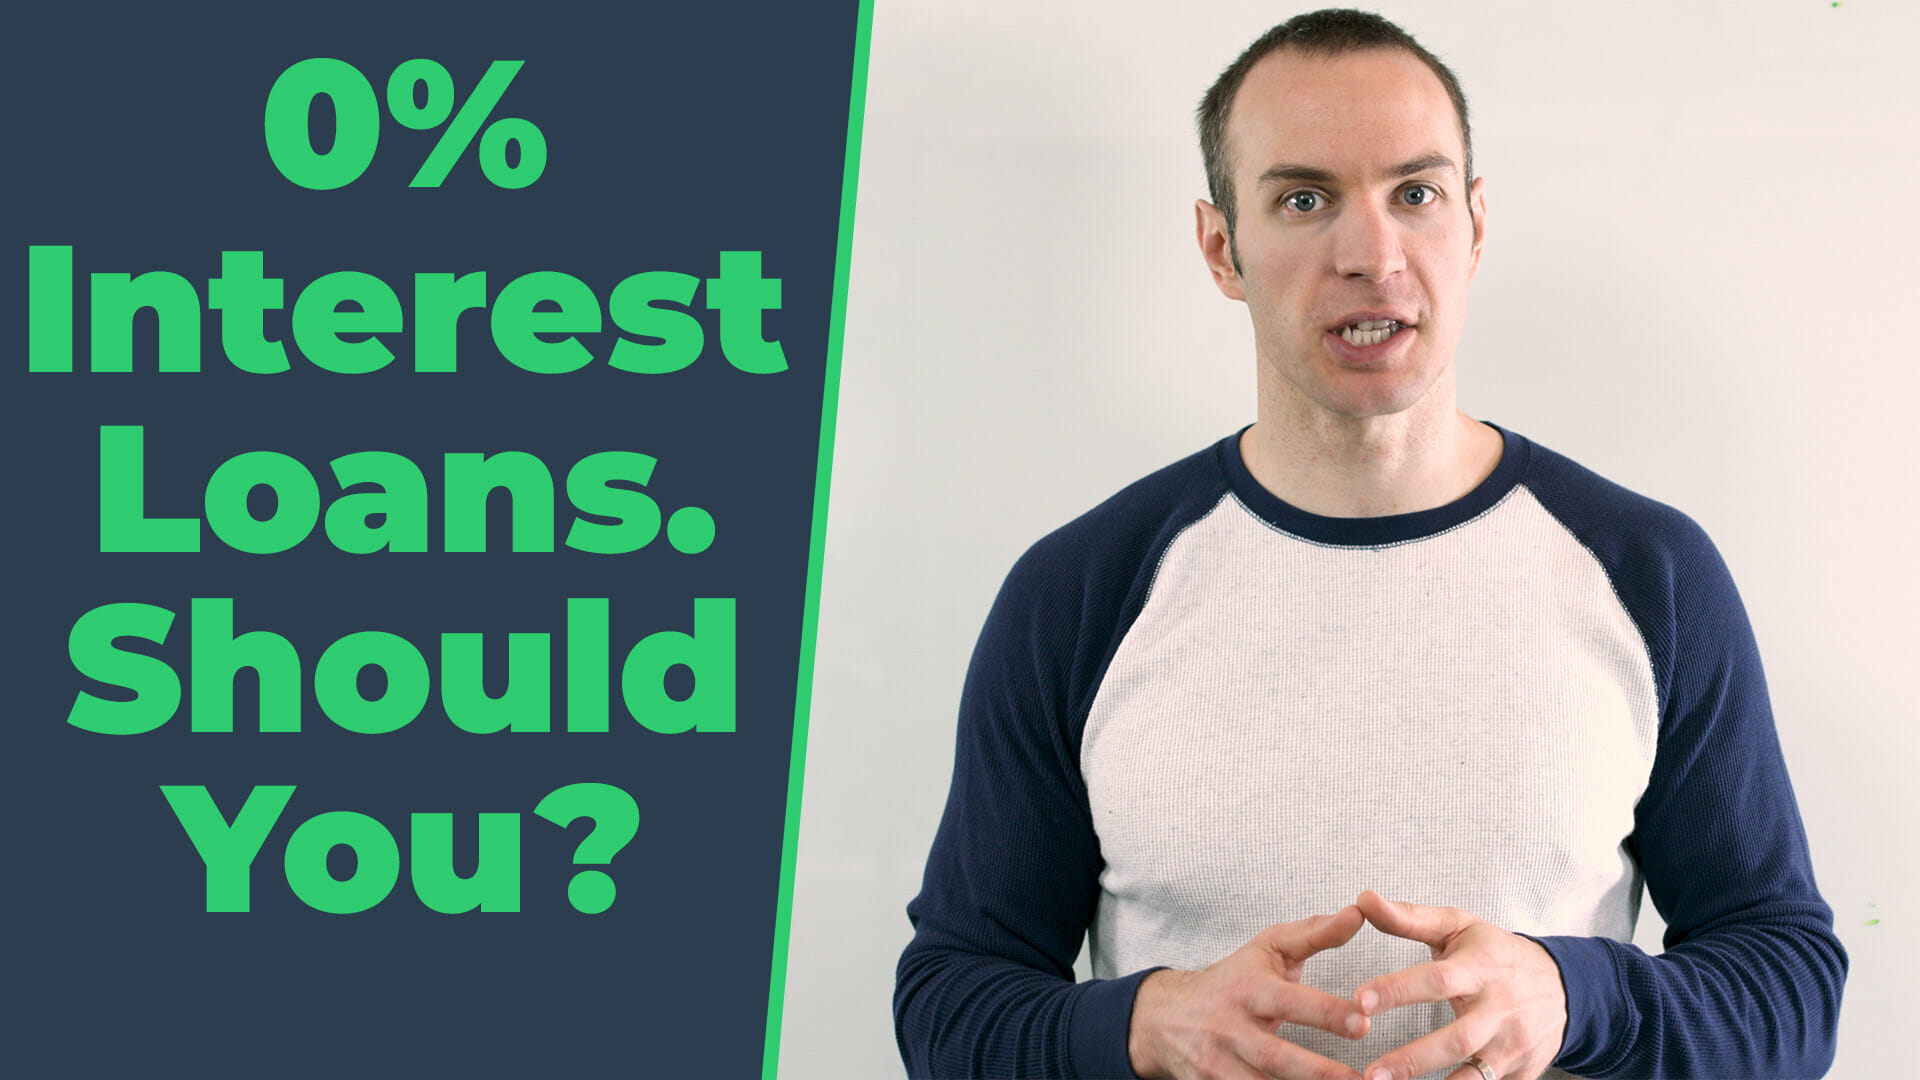 0% Interest Loans. Should You?